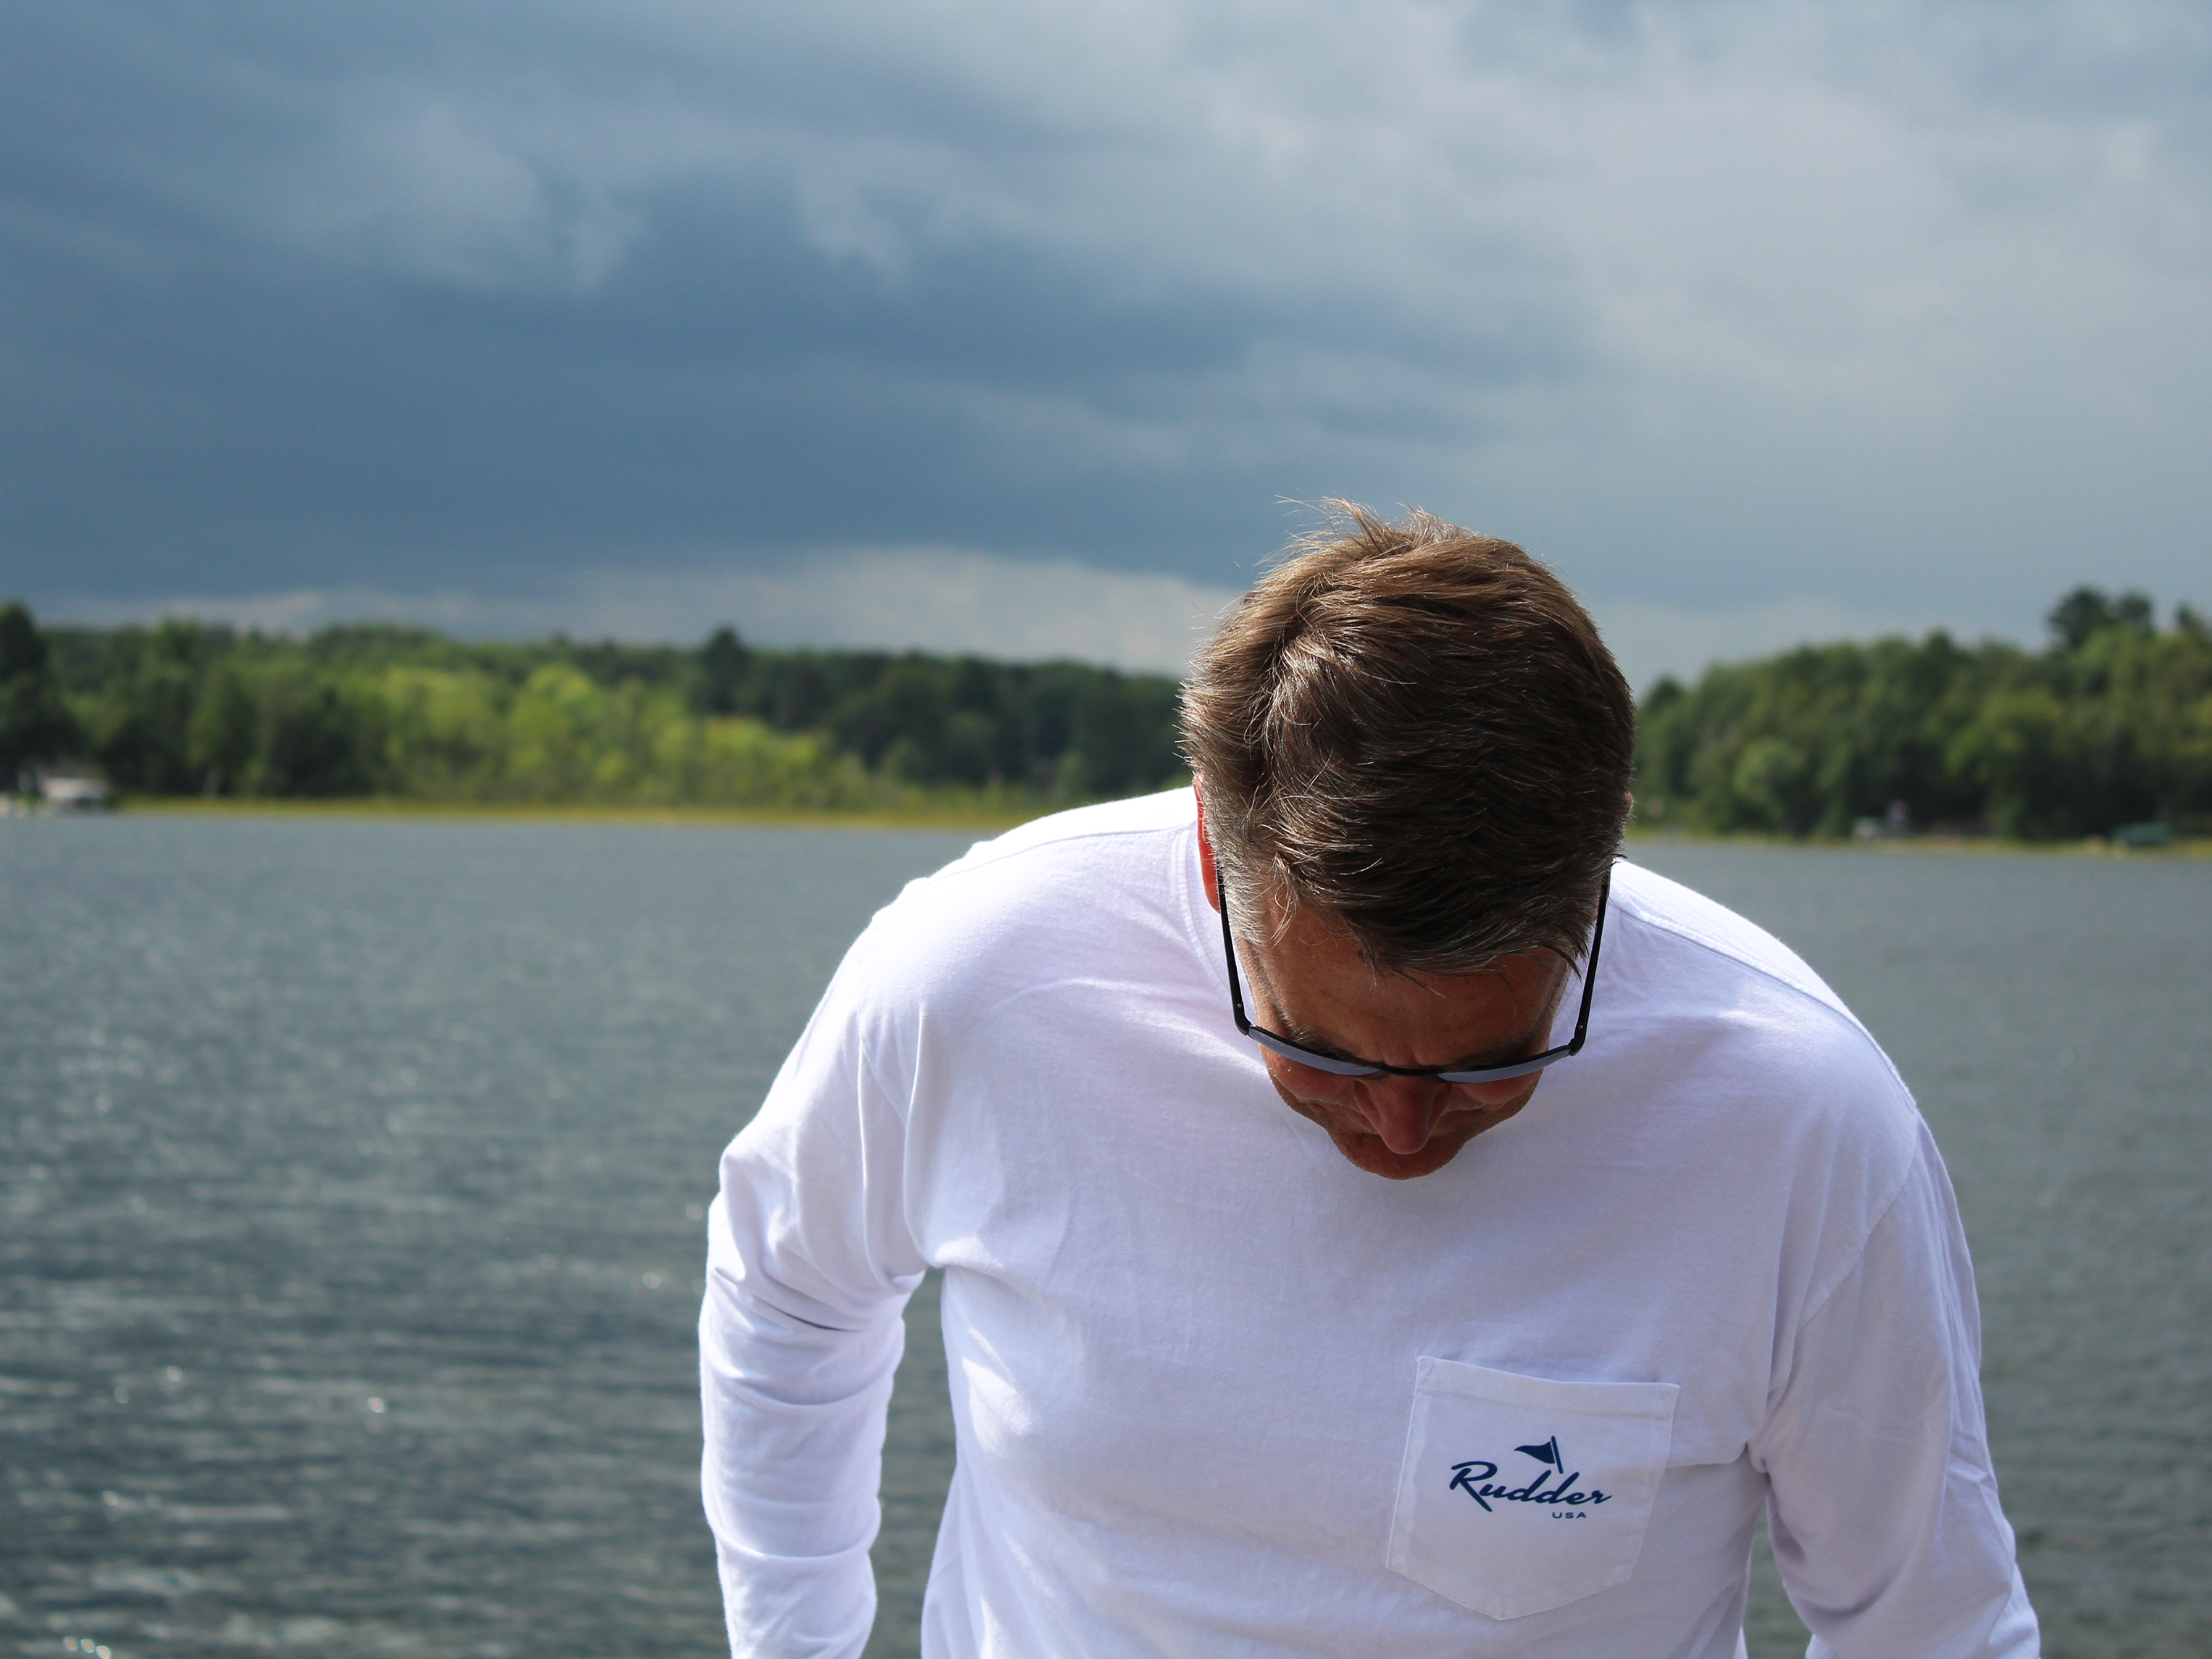 Rudder USA Long Sleeve Logo T Shirt. Preppy Nautical Long Sleeve Shirt. Screen Printed Rudder USA Shirt. Comfortable Long Sleeve shirt. White Long Sleeve T Shirt. Classic White Long Sleeve T Shirt.